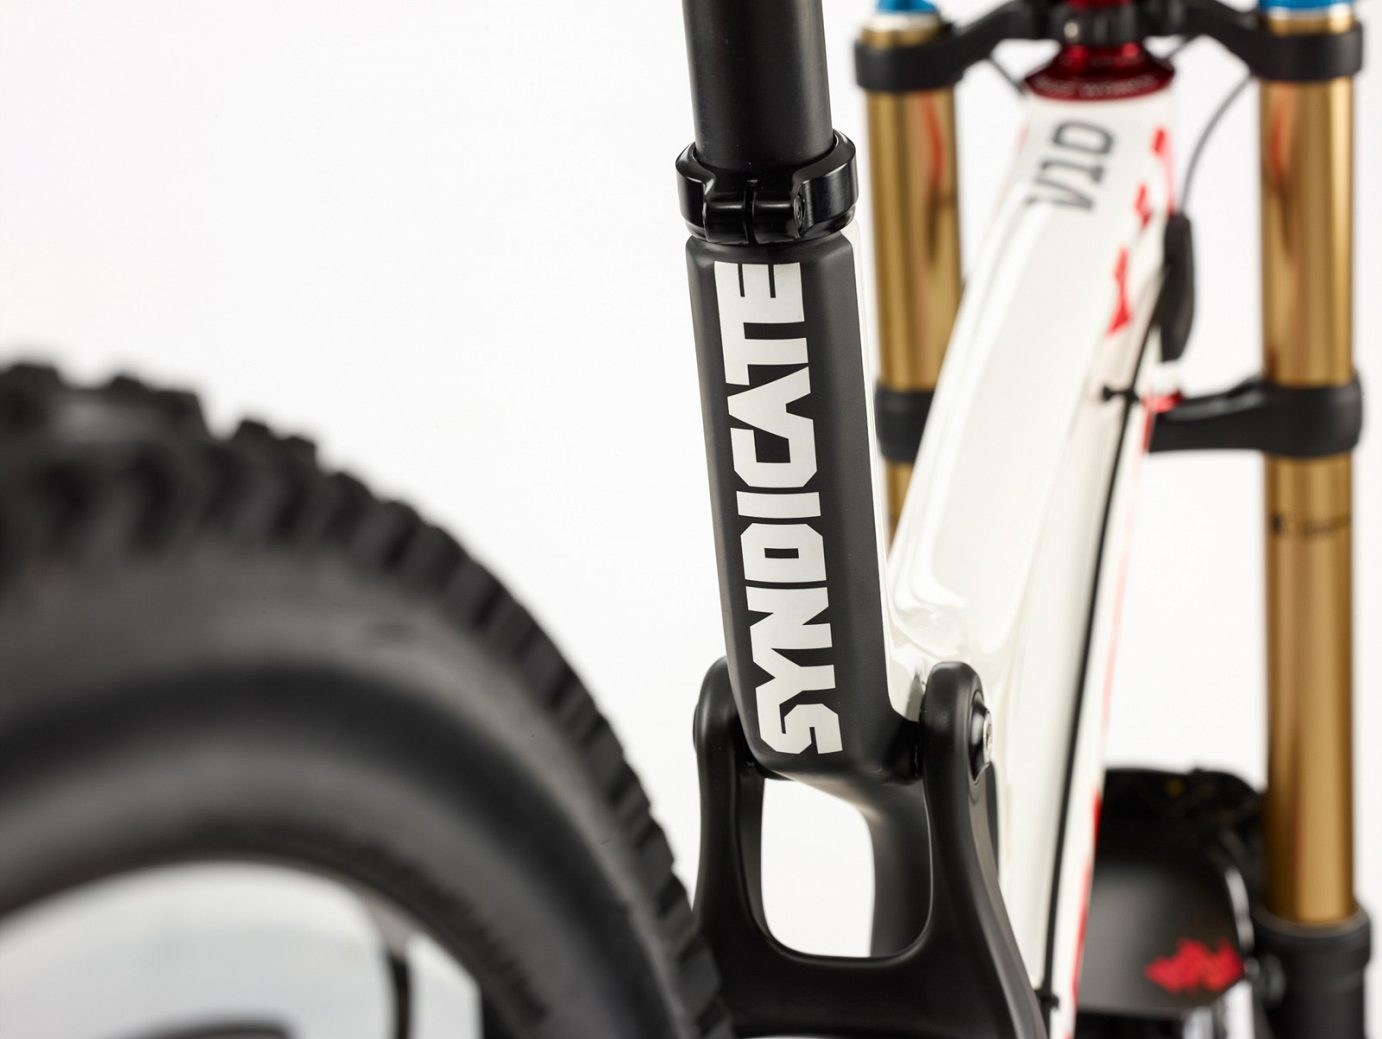 syndicate v10 msa seat tube